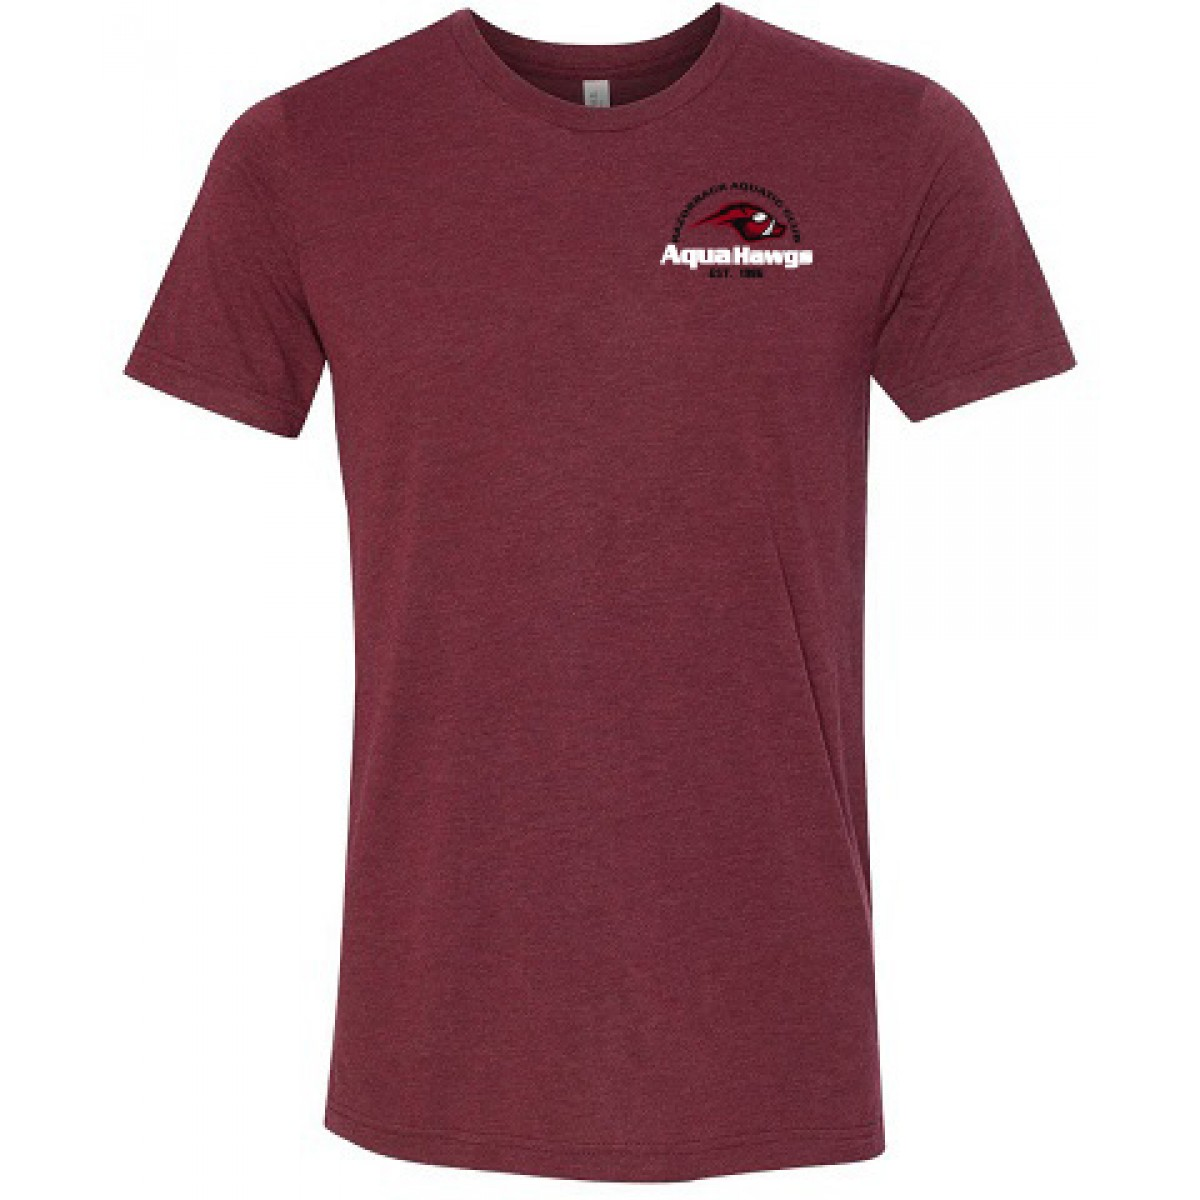 Bella+Canvas Unisex Short Sleeve Jersey T-Shirt-Cardinal Red-2XL